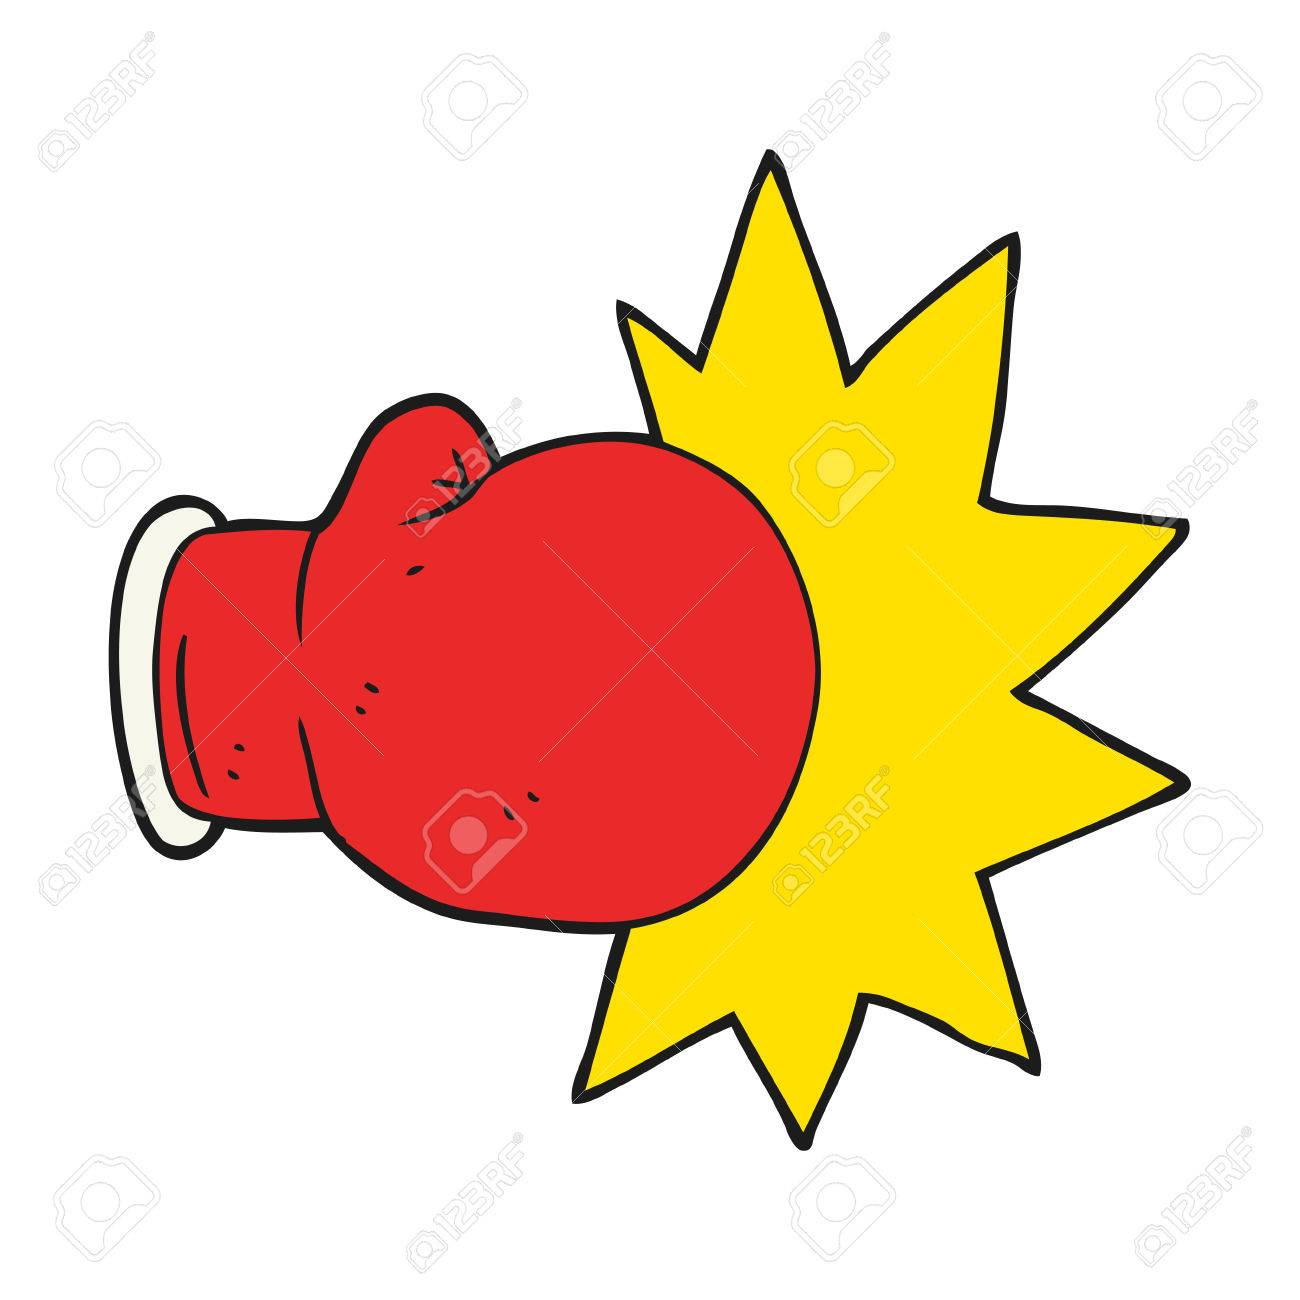 Cartoon Boxing Clip Art Wiring Diagrams Filebasic Of Dimmersjpg Wikimedia Commons Freehand Drawn Glove Royalty Free Cliparts Vectors Rh 123rf Com Ring Popeye Cartoons